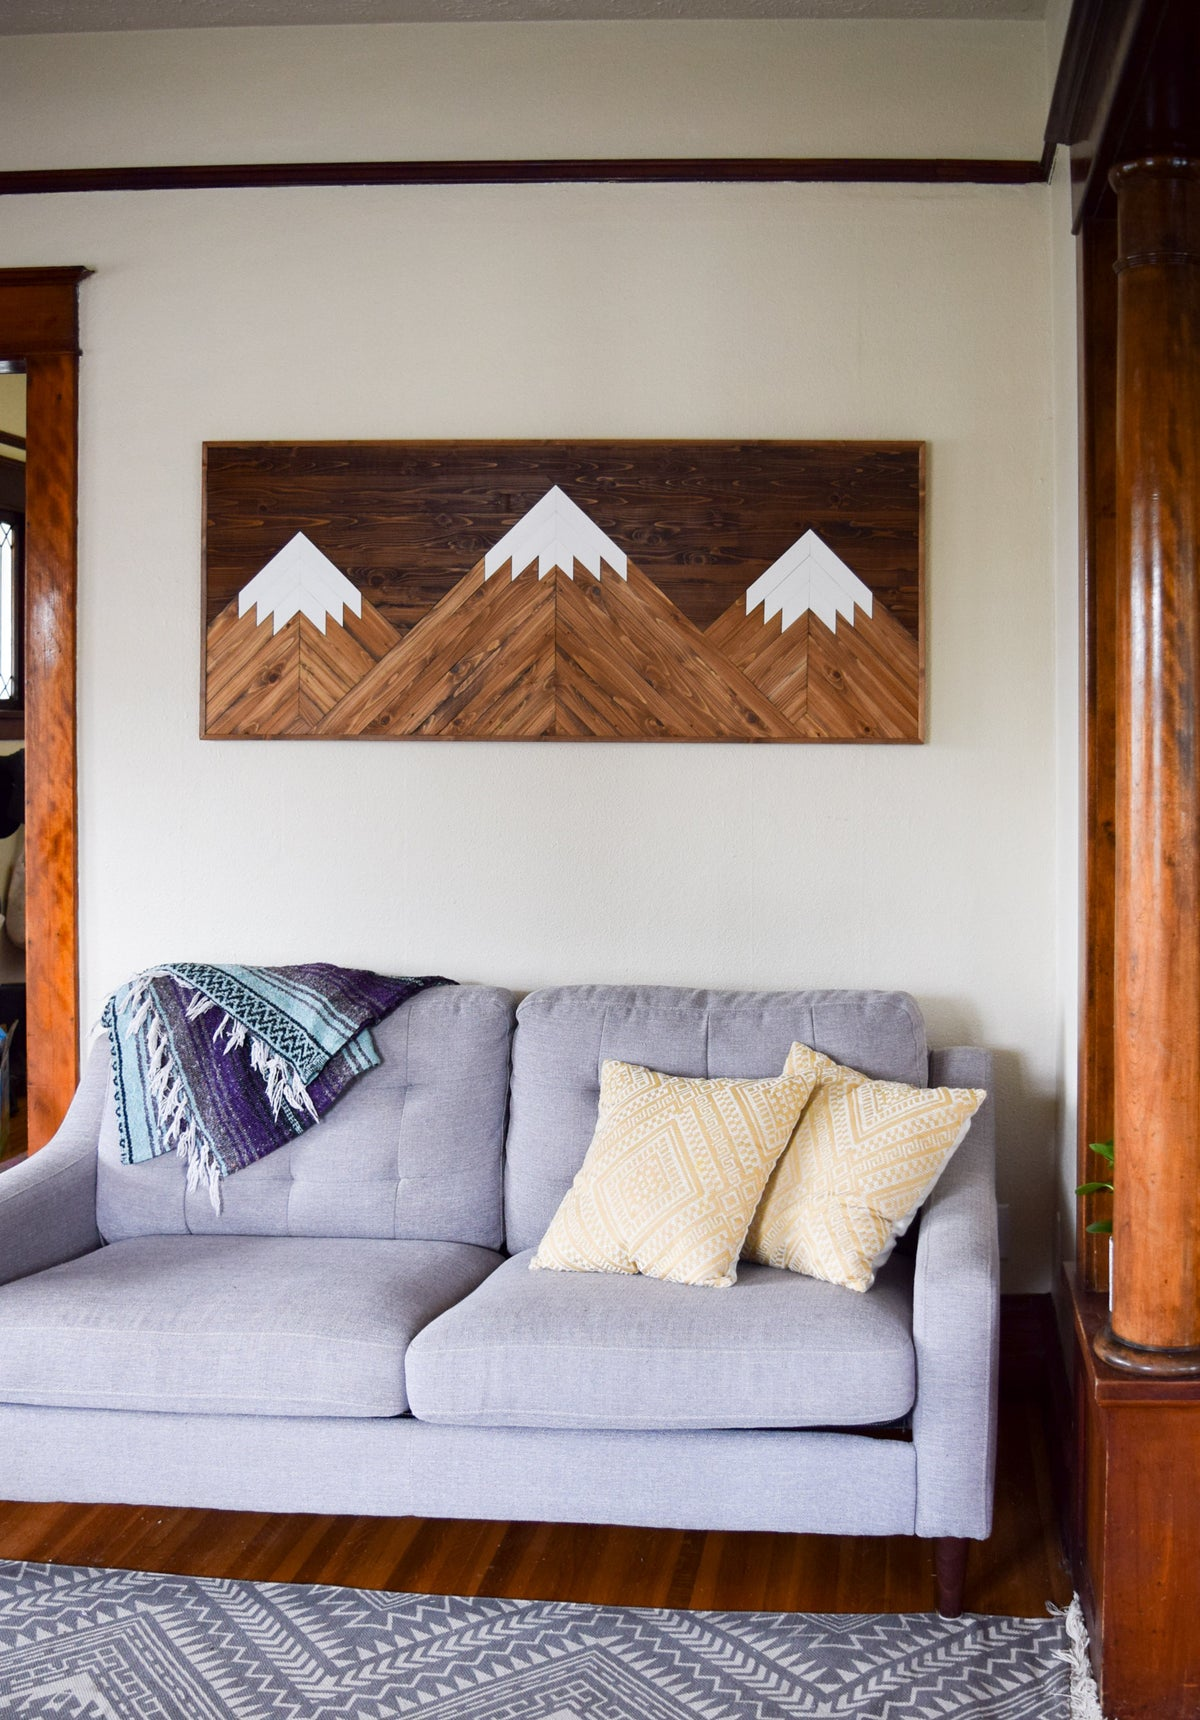 PEAKS Wood Wall Art - Wood Headboard - Geometric Wooden Artwork for Modern Spaces - Wood Home Decor - Queen Headboard